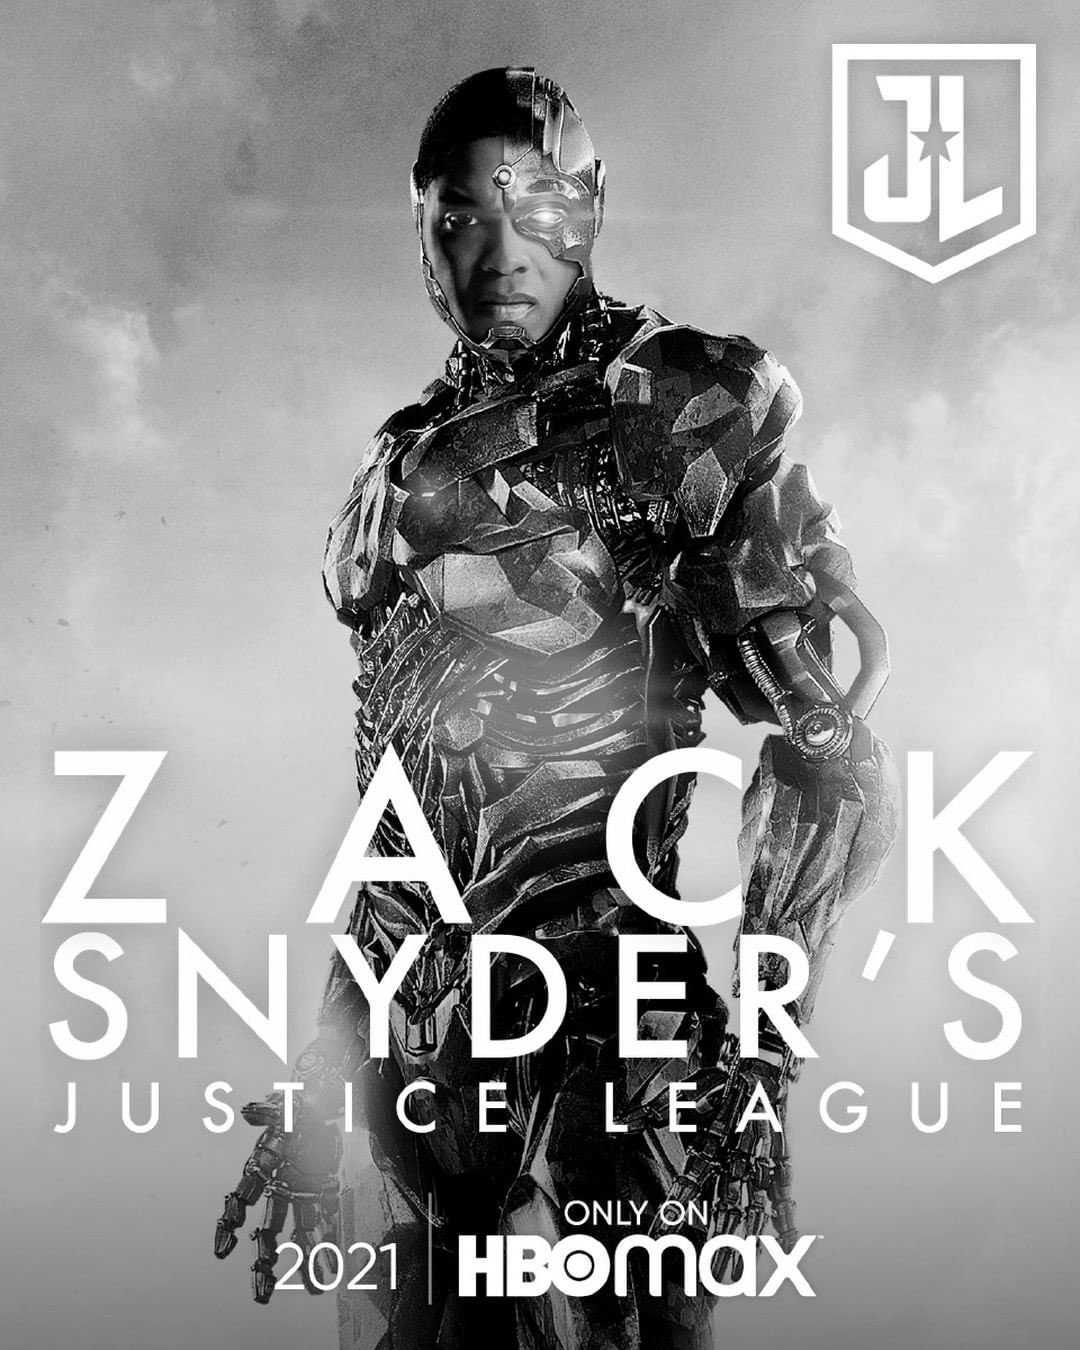 Zack Snyder's Justice League Poster - raggio, ray Fisher as Cyborg